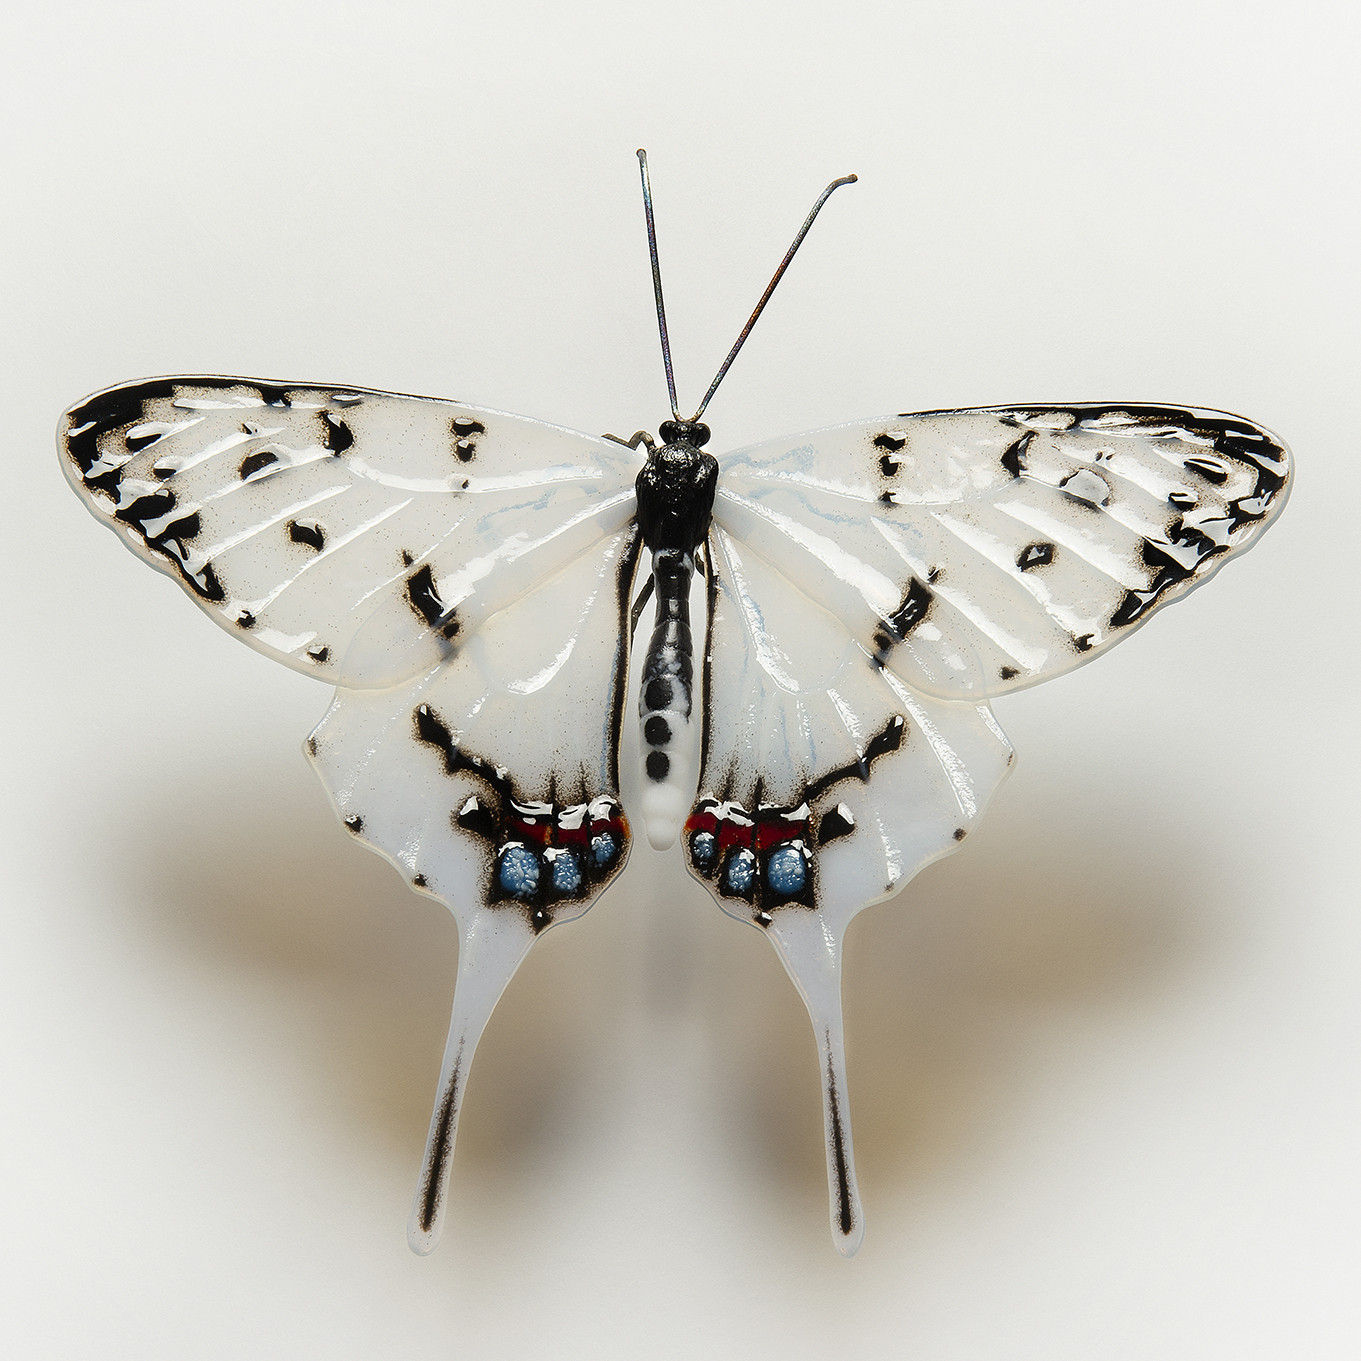 Dragon Swallowtail Butterfly by Laura Hart at the Saffron Walden Gallery